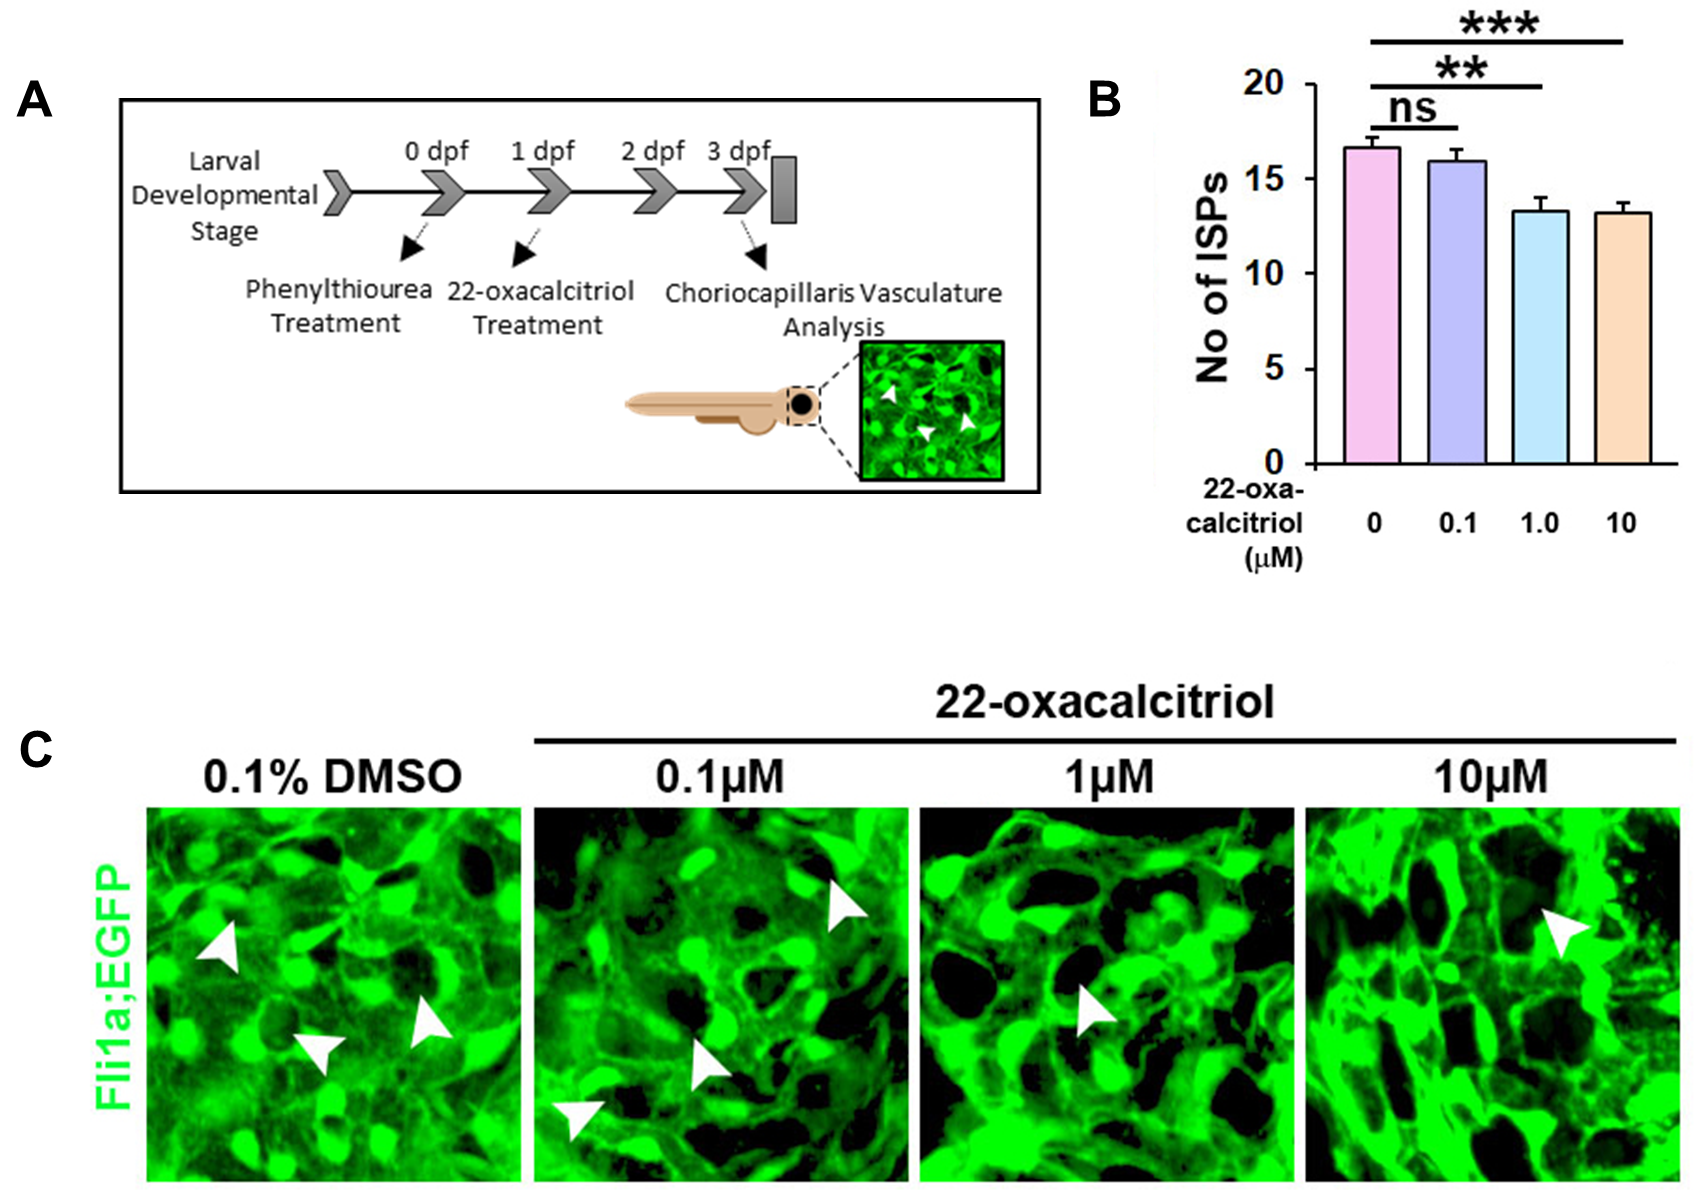 22-oxacalcitriol attenuates choriocapillaris development in zebrafish larvae.